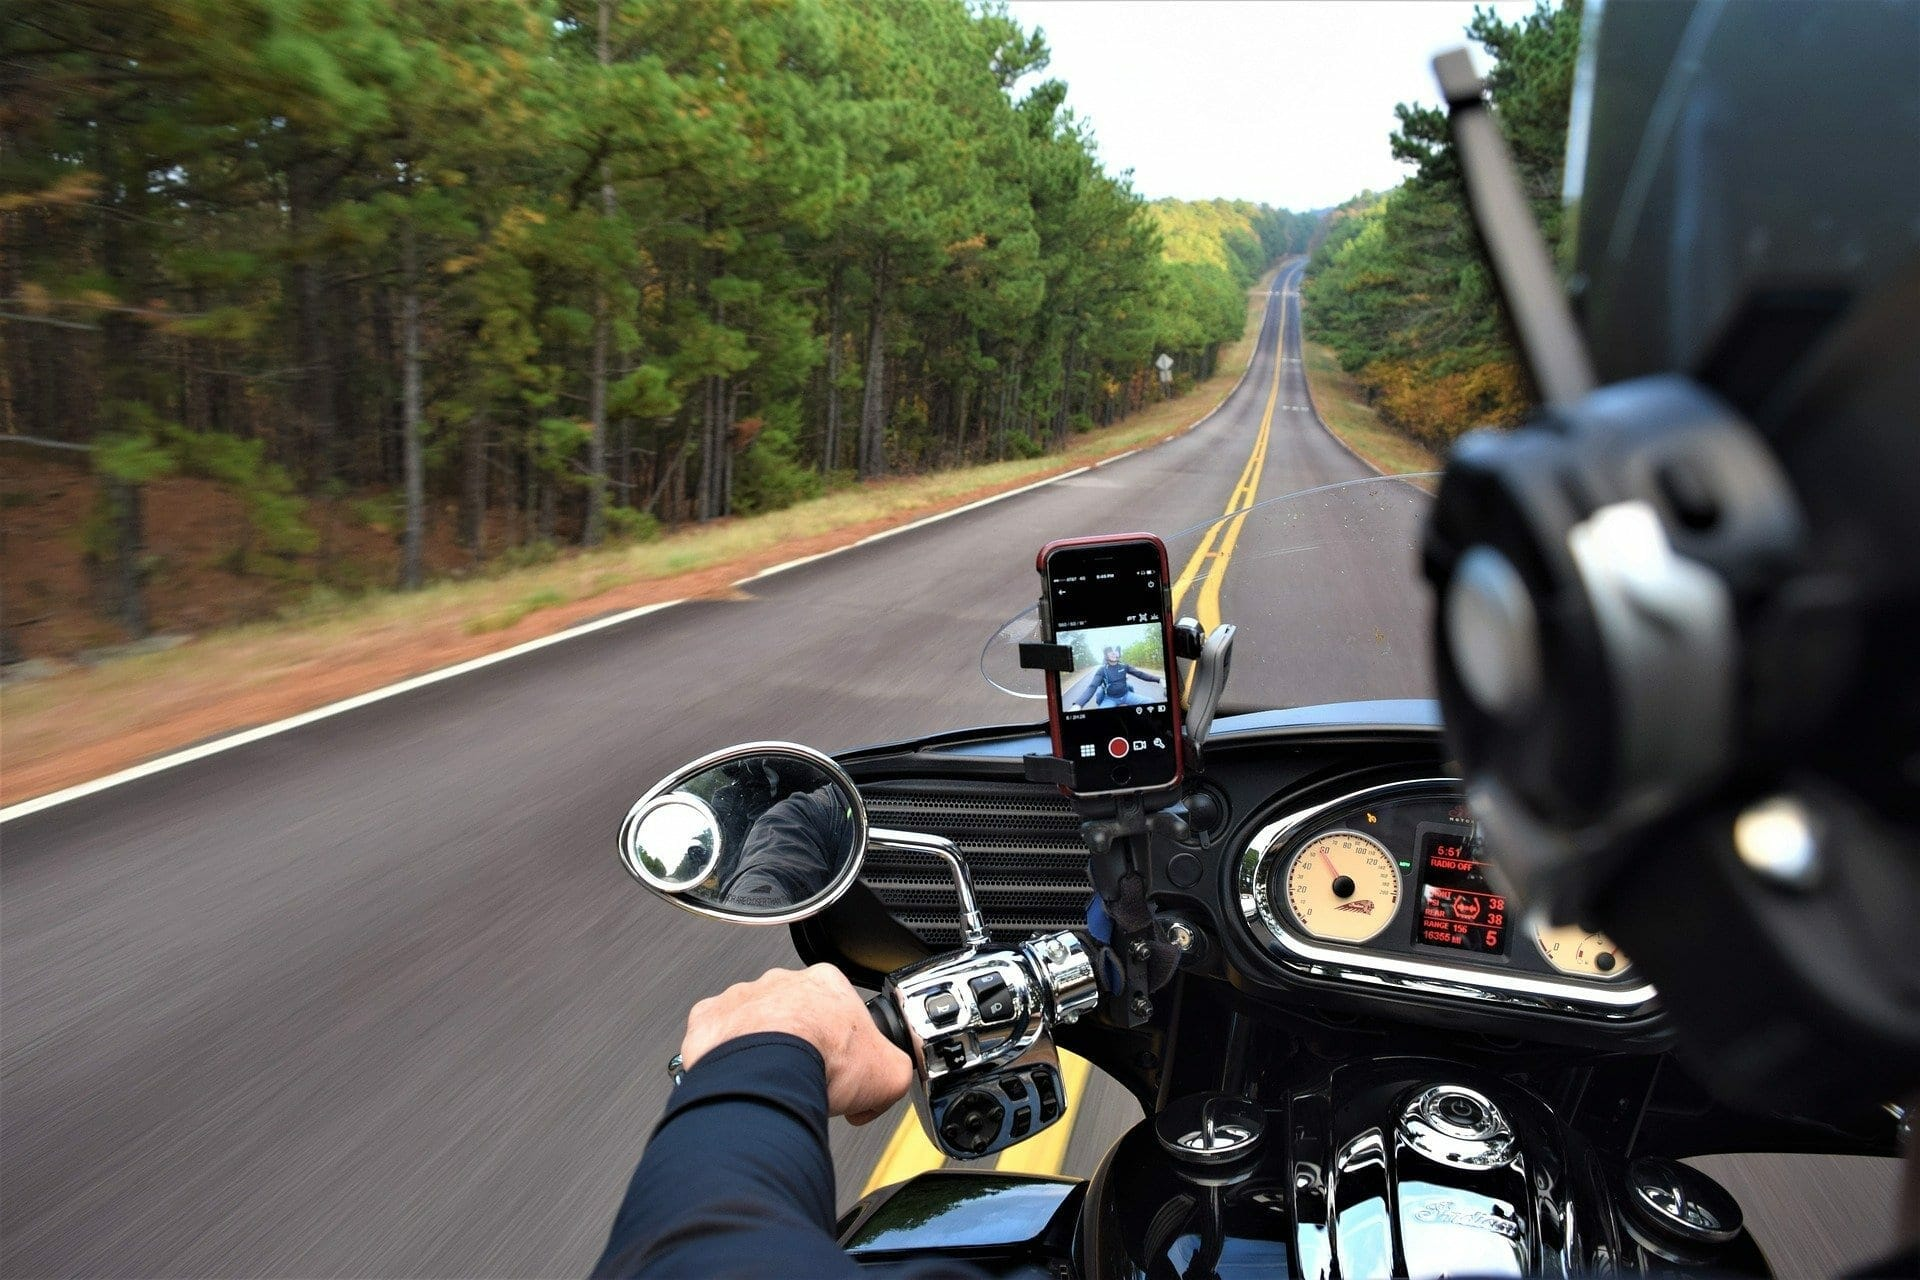 Loss of Control to Blame for Most Motorcycle Accidents